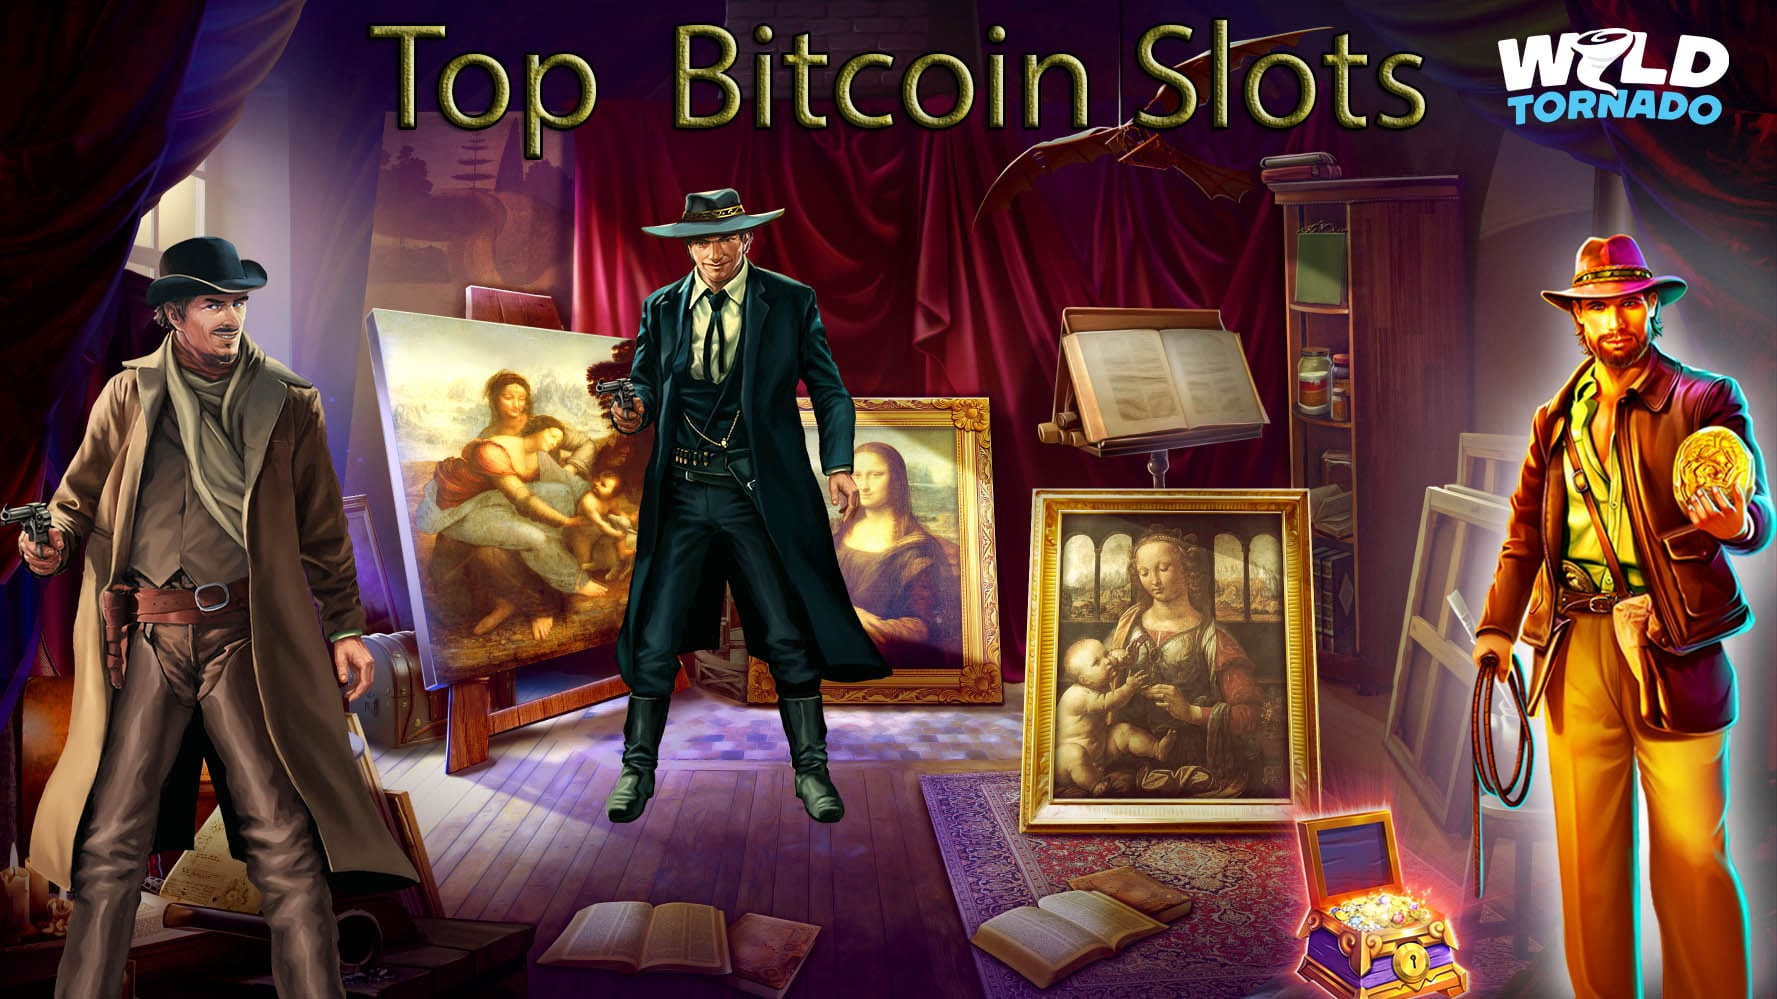 Top 5 Latest Bitcoin Slots to Play